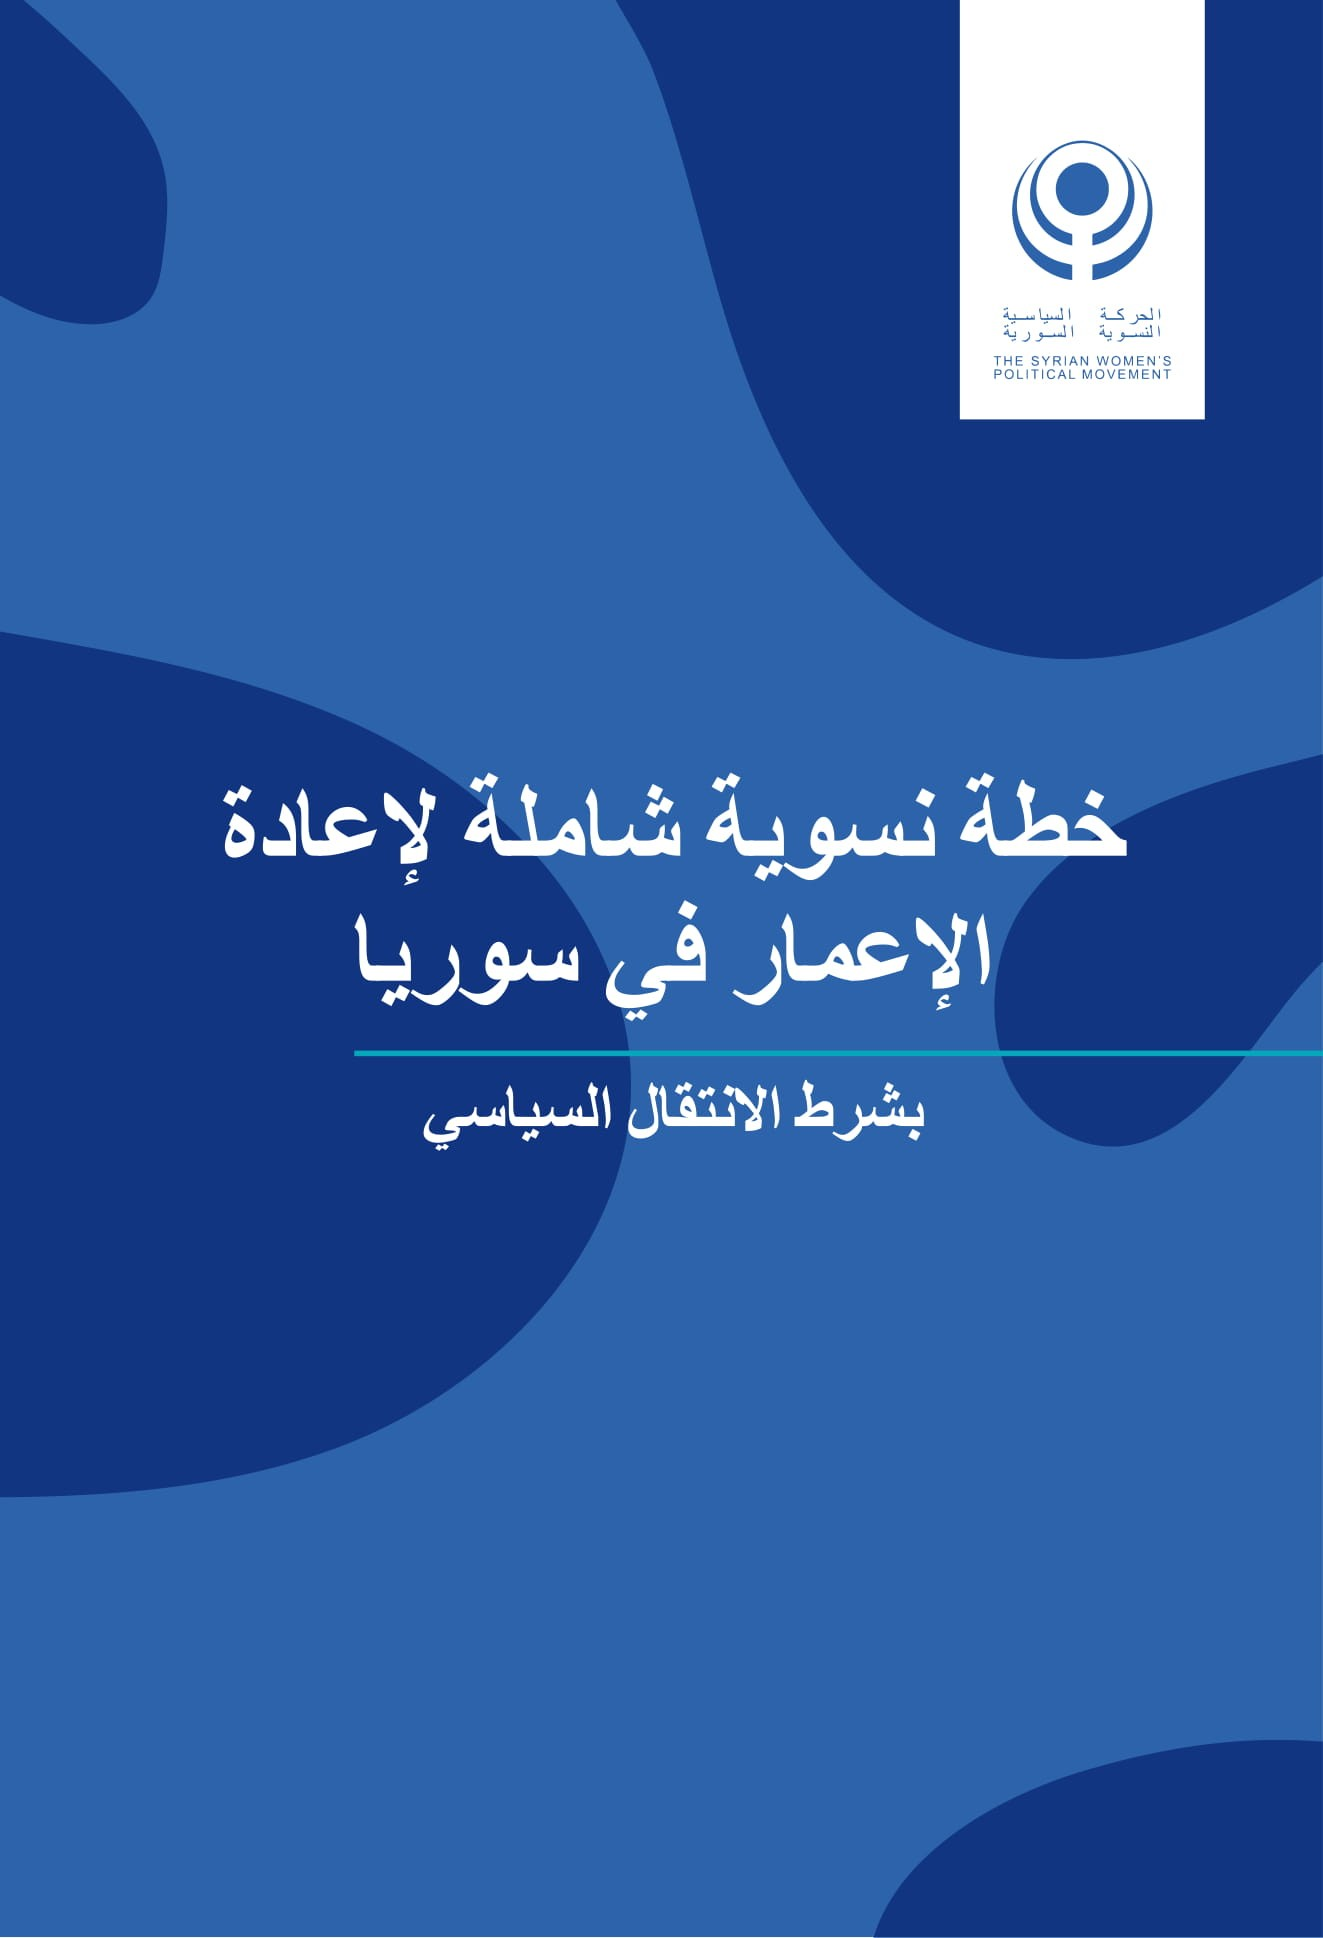 A Comprehensive Feminist Plan for Reconstruction in Syria with the condition of political transition